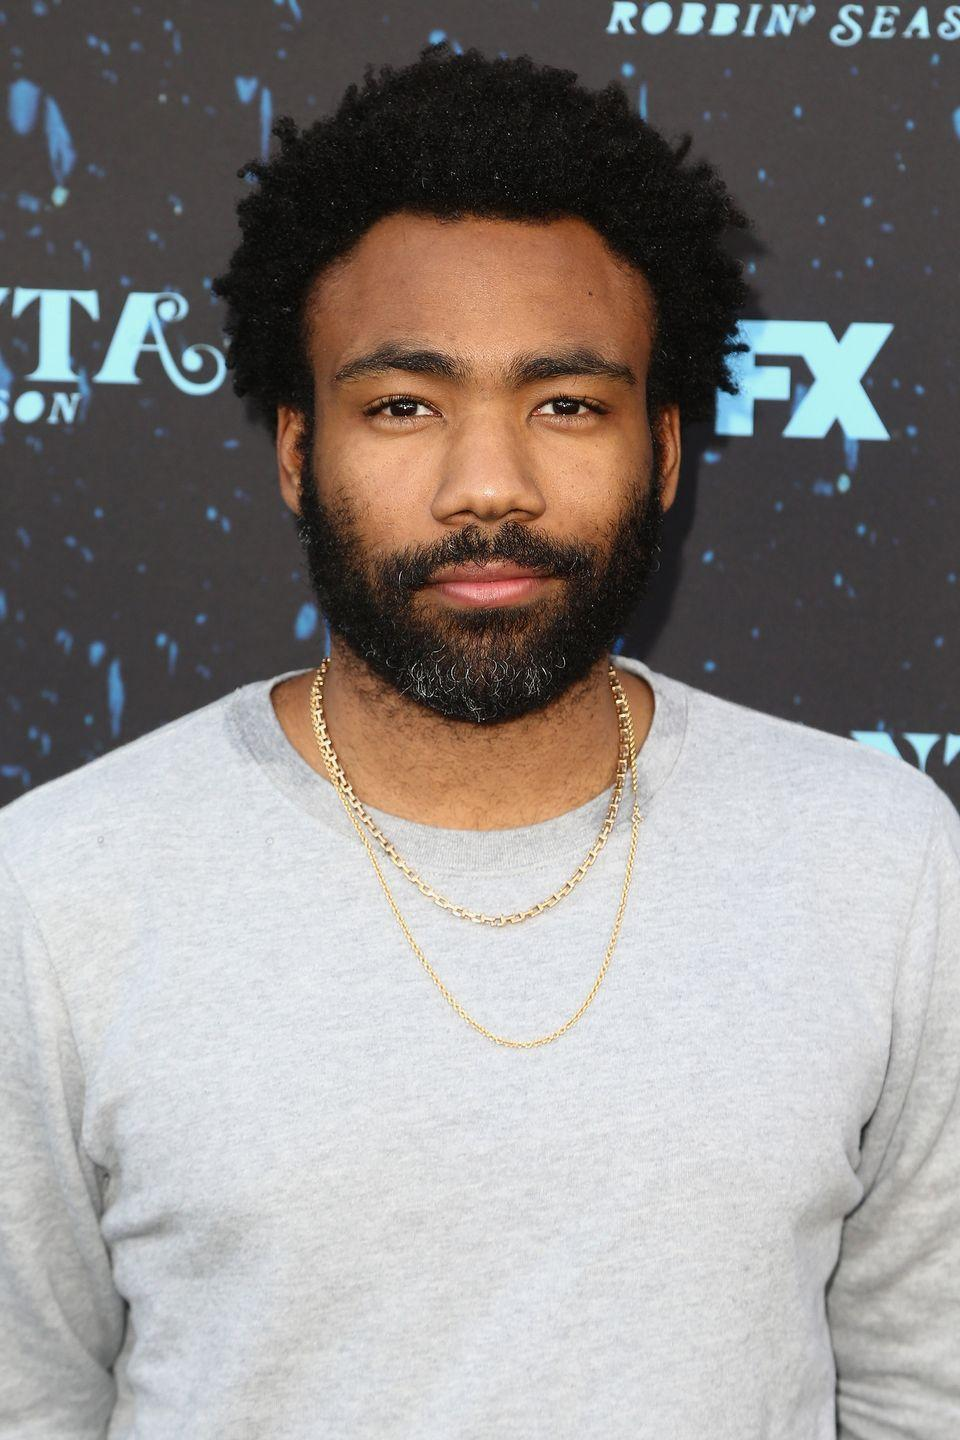 "<p>We said goodbye to Troy Barnes after five seasons, as Donald Glover's music and film careers were taking off. ""I remember vividly when Donald played me some music in his car — this was probably season 3 at some point — that he was working on, and it wasn't like one of your friends playing you a mixtape and you being like, 'Oh, that's pretty good,'"" says Pudi. ""I think this was 'Heartbeat' ... And I was like, 'Oh, this is like real good, Donald.' And immediately, I was like, 'Oh, you're gone,'"" Danny Pudi told <a href=""https://ew.com/tv/community-binge-season-5-danny-pudi/"" rel=""nofollow noopener"" target=""_blank"" data-ylk=""slk:Entertainment Weekly"" class=""link rapid-noclick-resp""><em>Entertainment Weekly</em></a><em>. </em></p>"